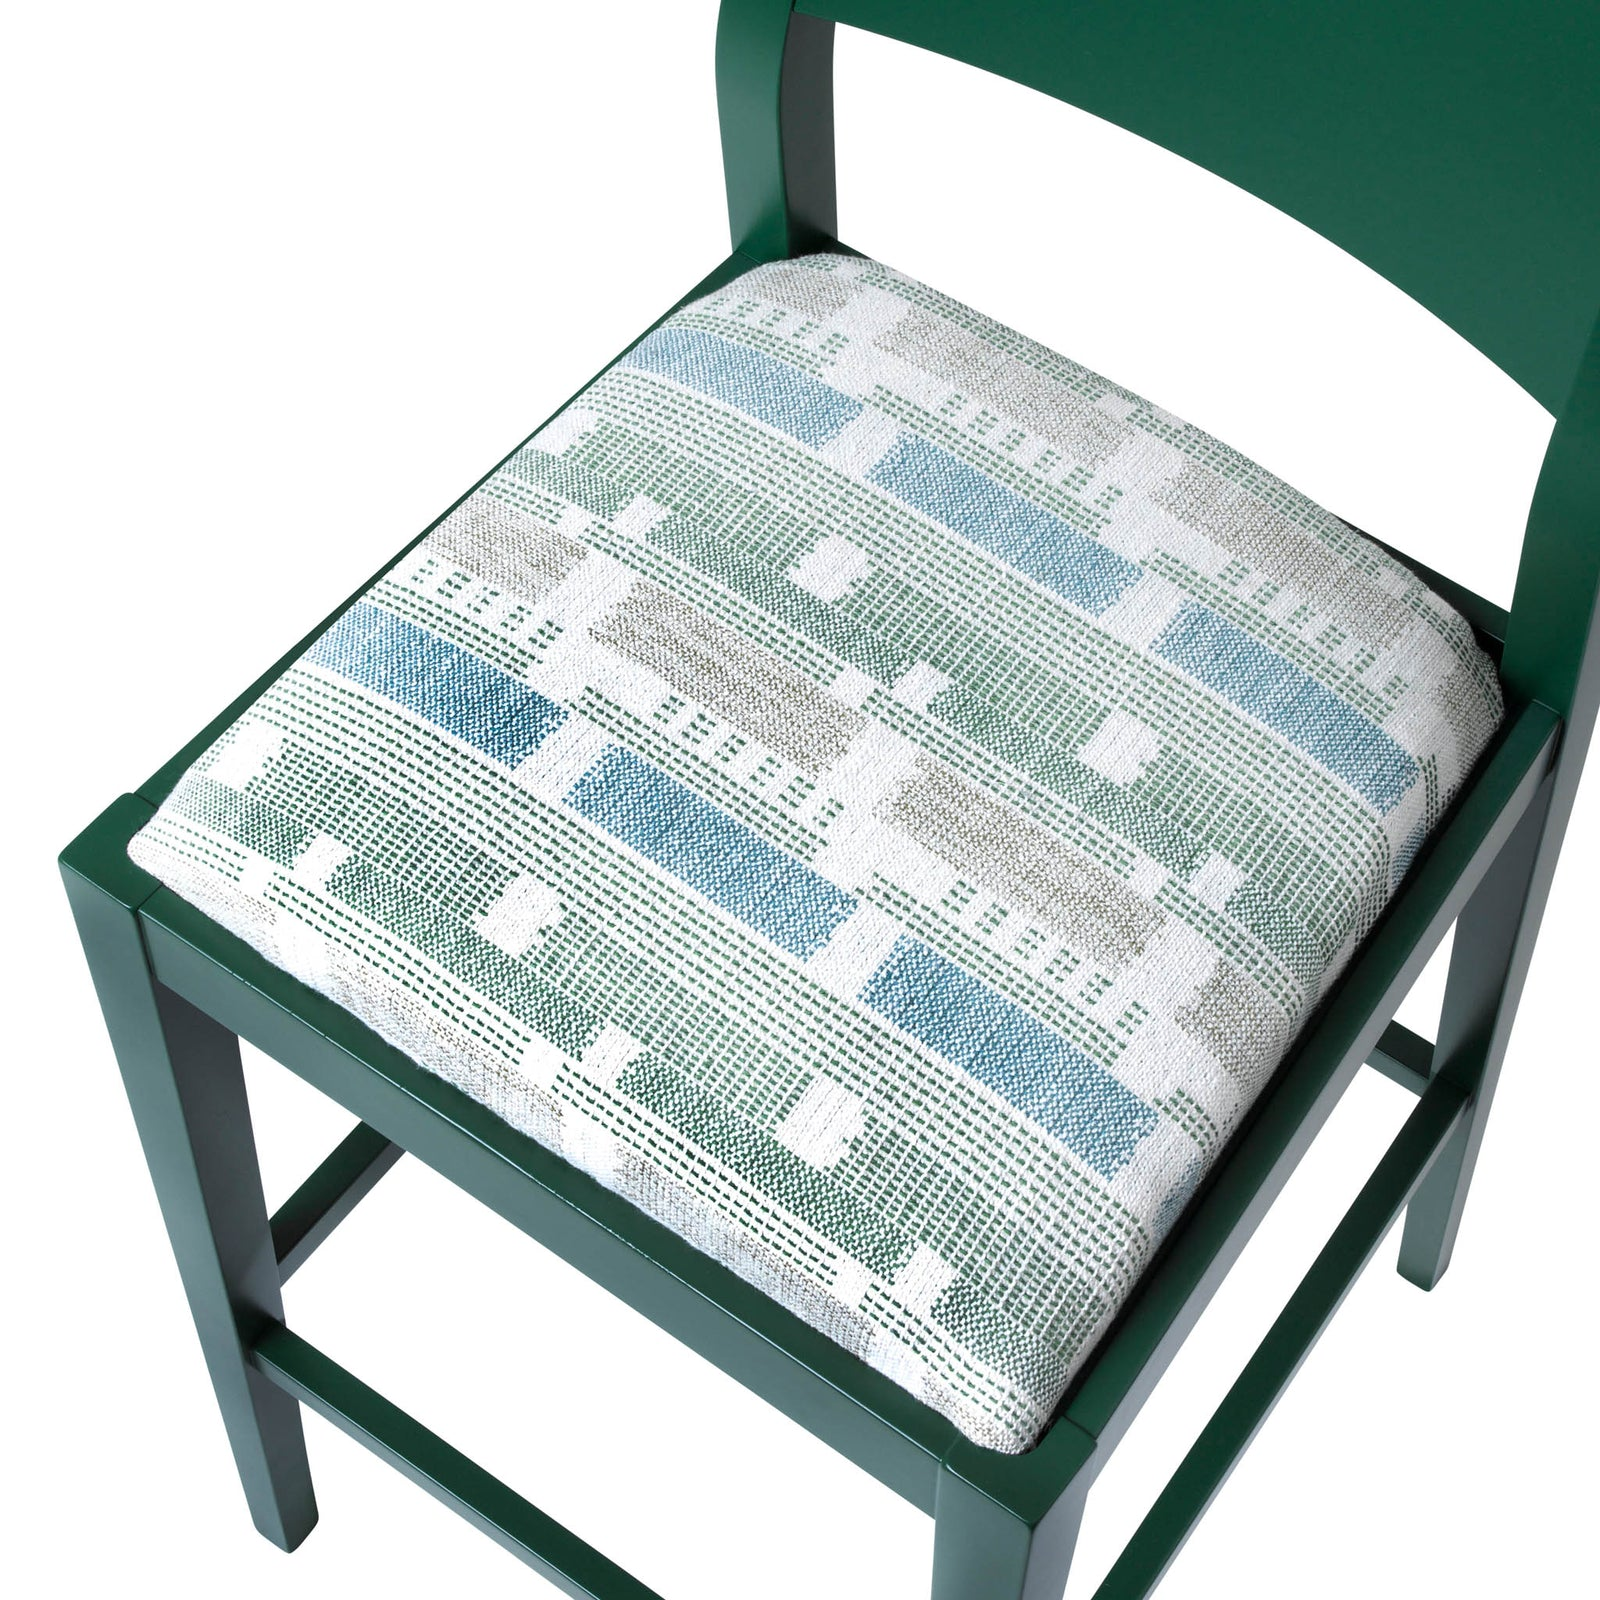 James Luxury Bar Stool Upholstered in the luxury Loom Weave Green from Kit Kemp